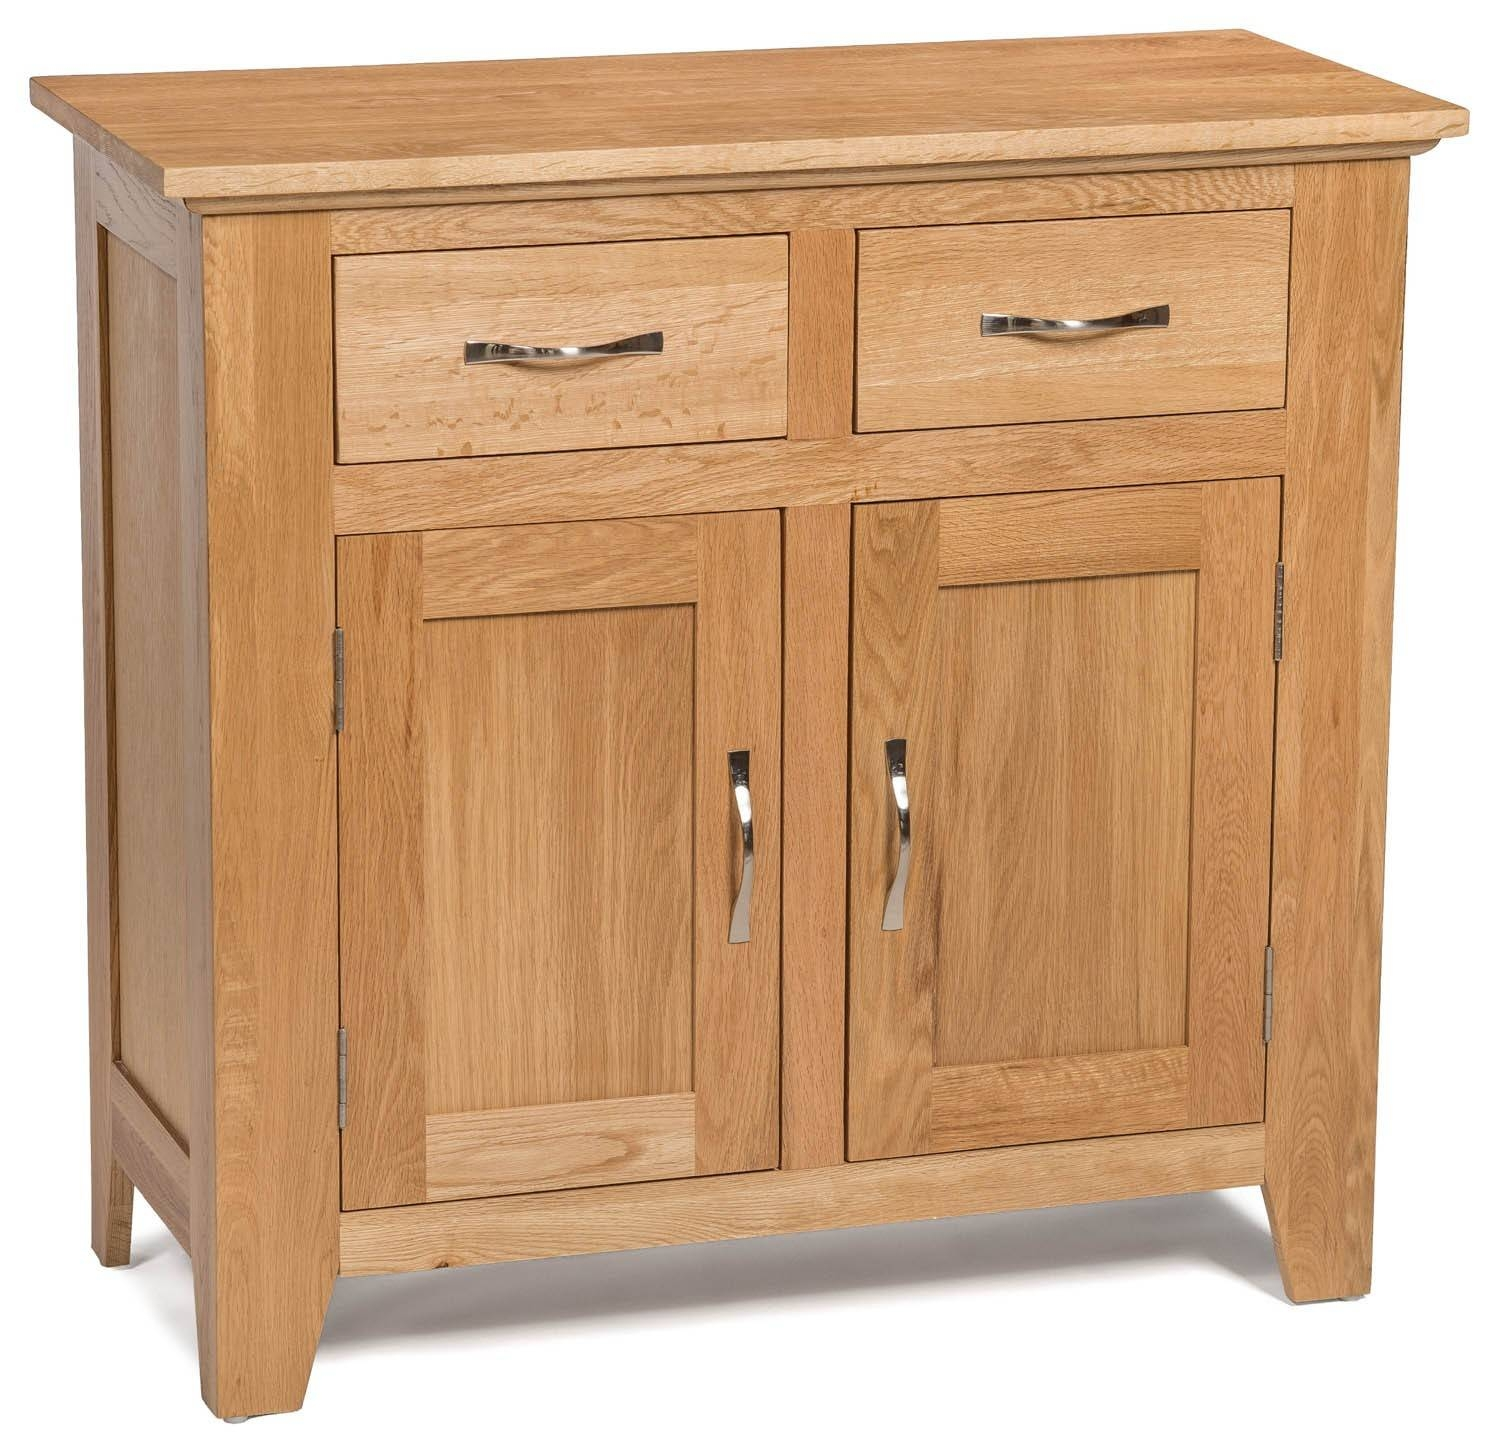 Camberley Oak Small 2 Door 2 Drawer Sideboard – Sideboards & Tops With Regard To Small Sideboards With Drawers (View 6 of 30)